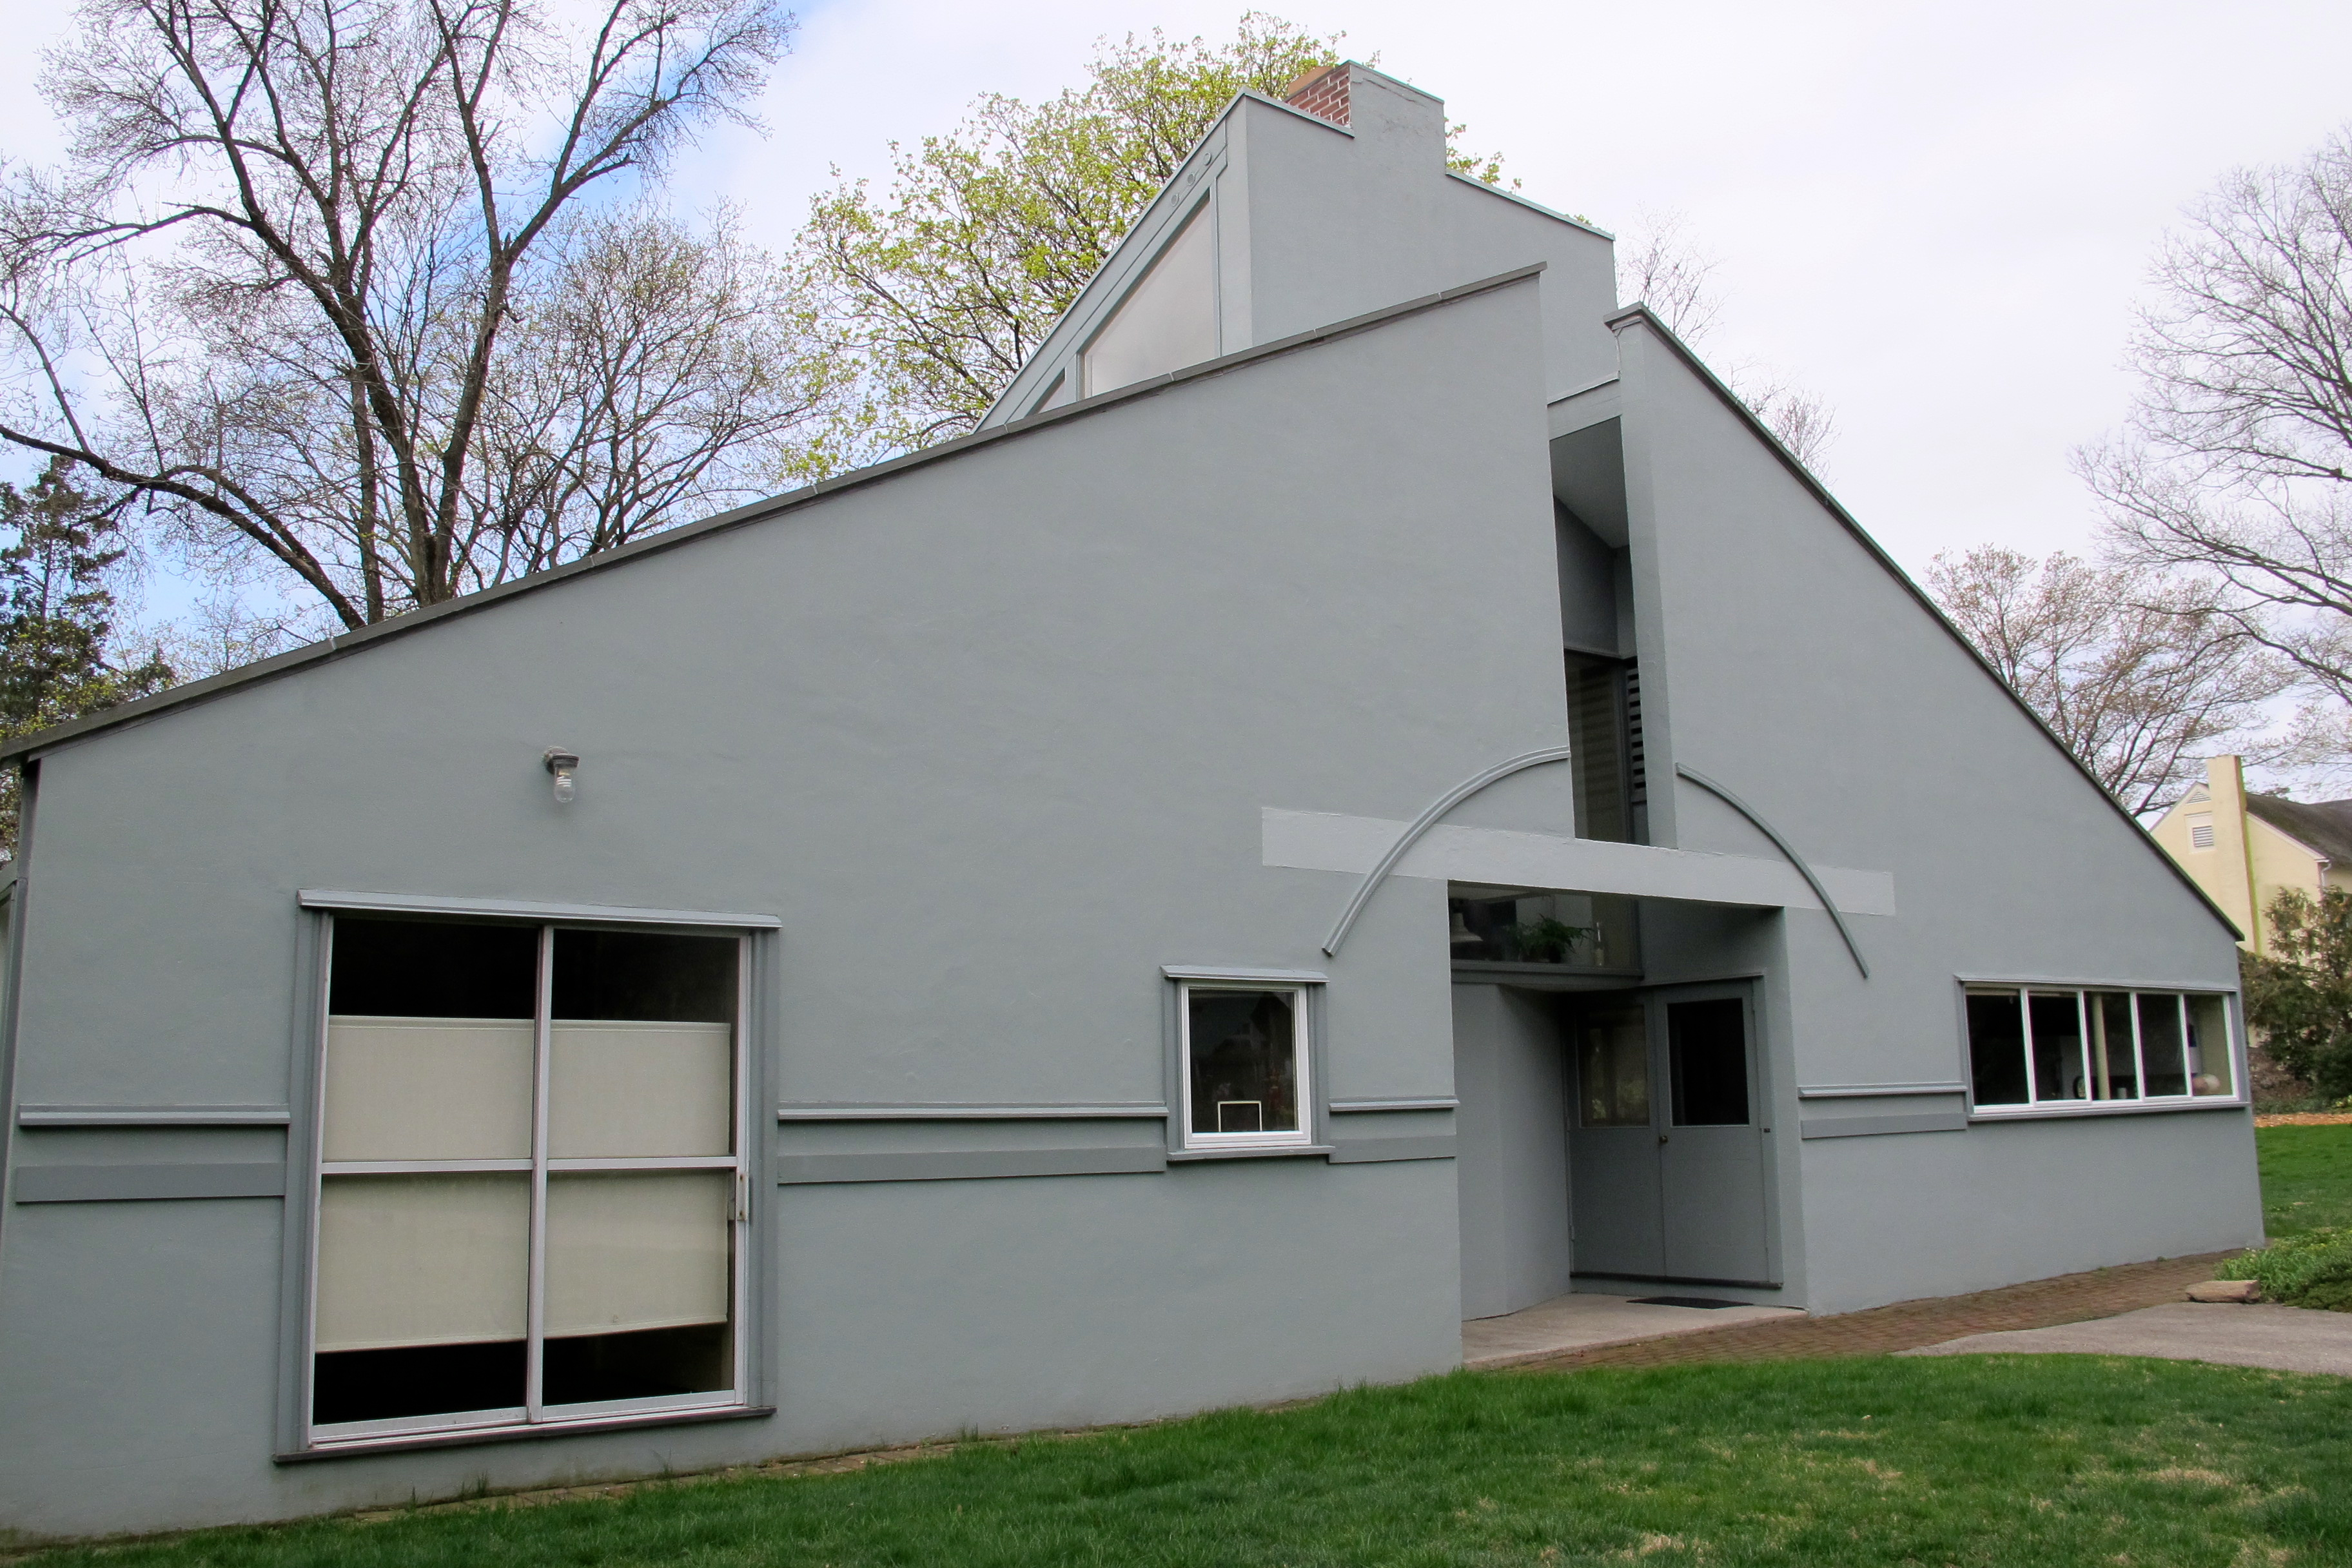 Vanna Venturi House was designated by the city as historic in 2016